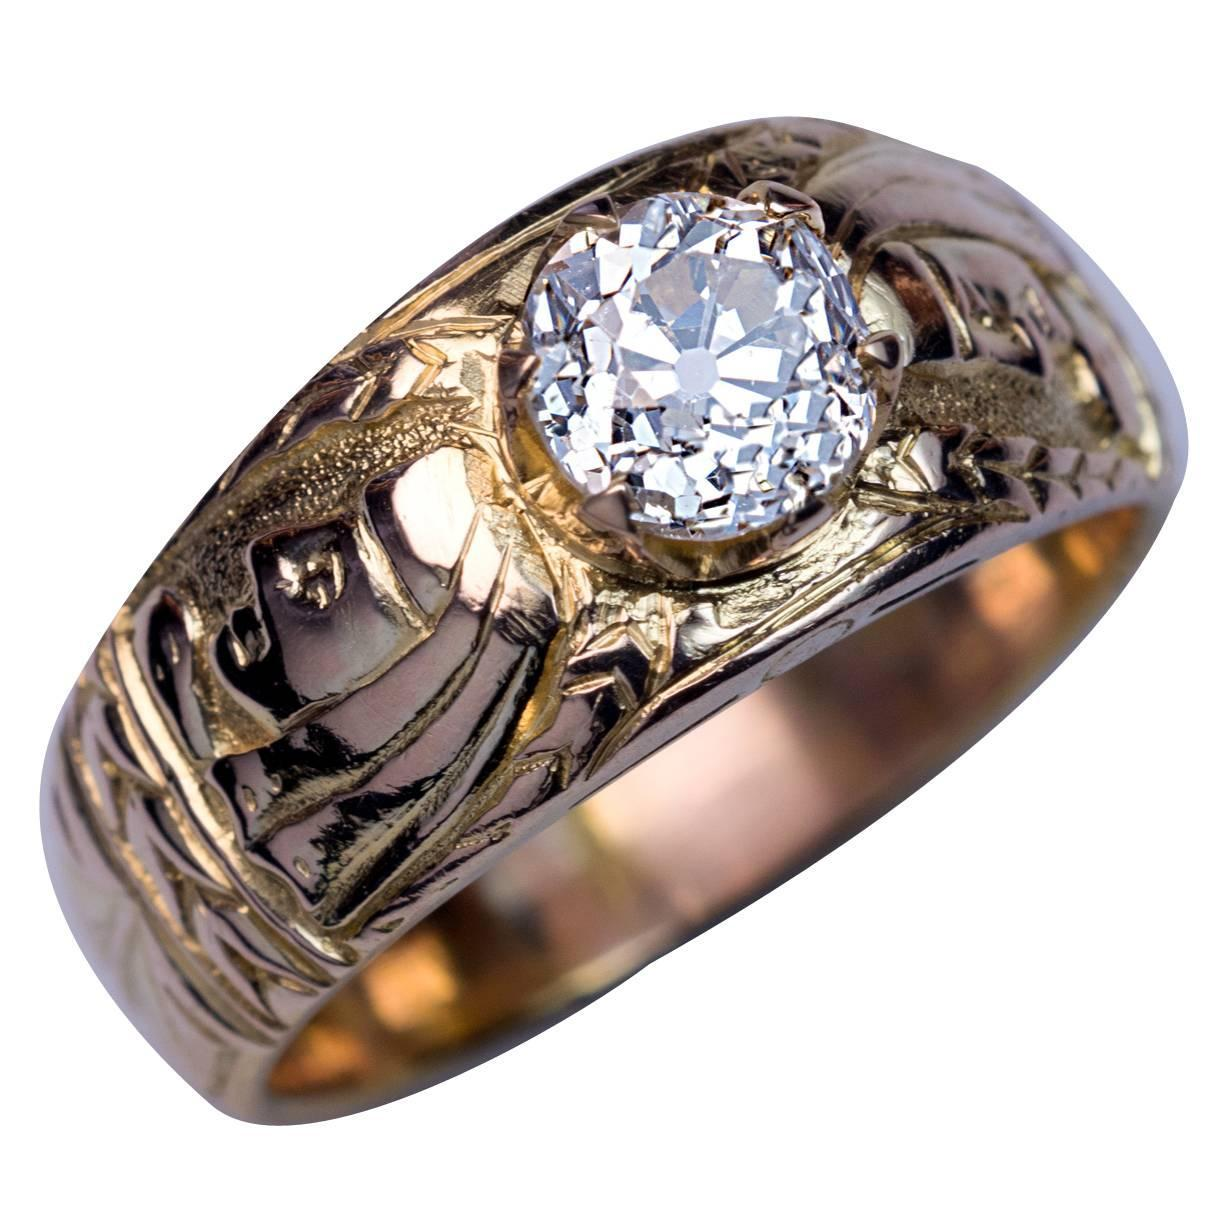 Antique Diamond Chased Gold Men's Ring For Sale At 1stdibs